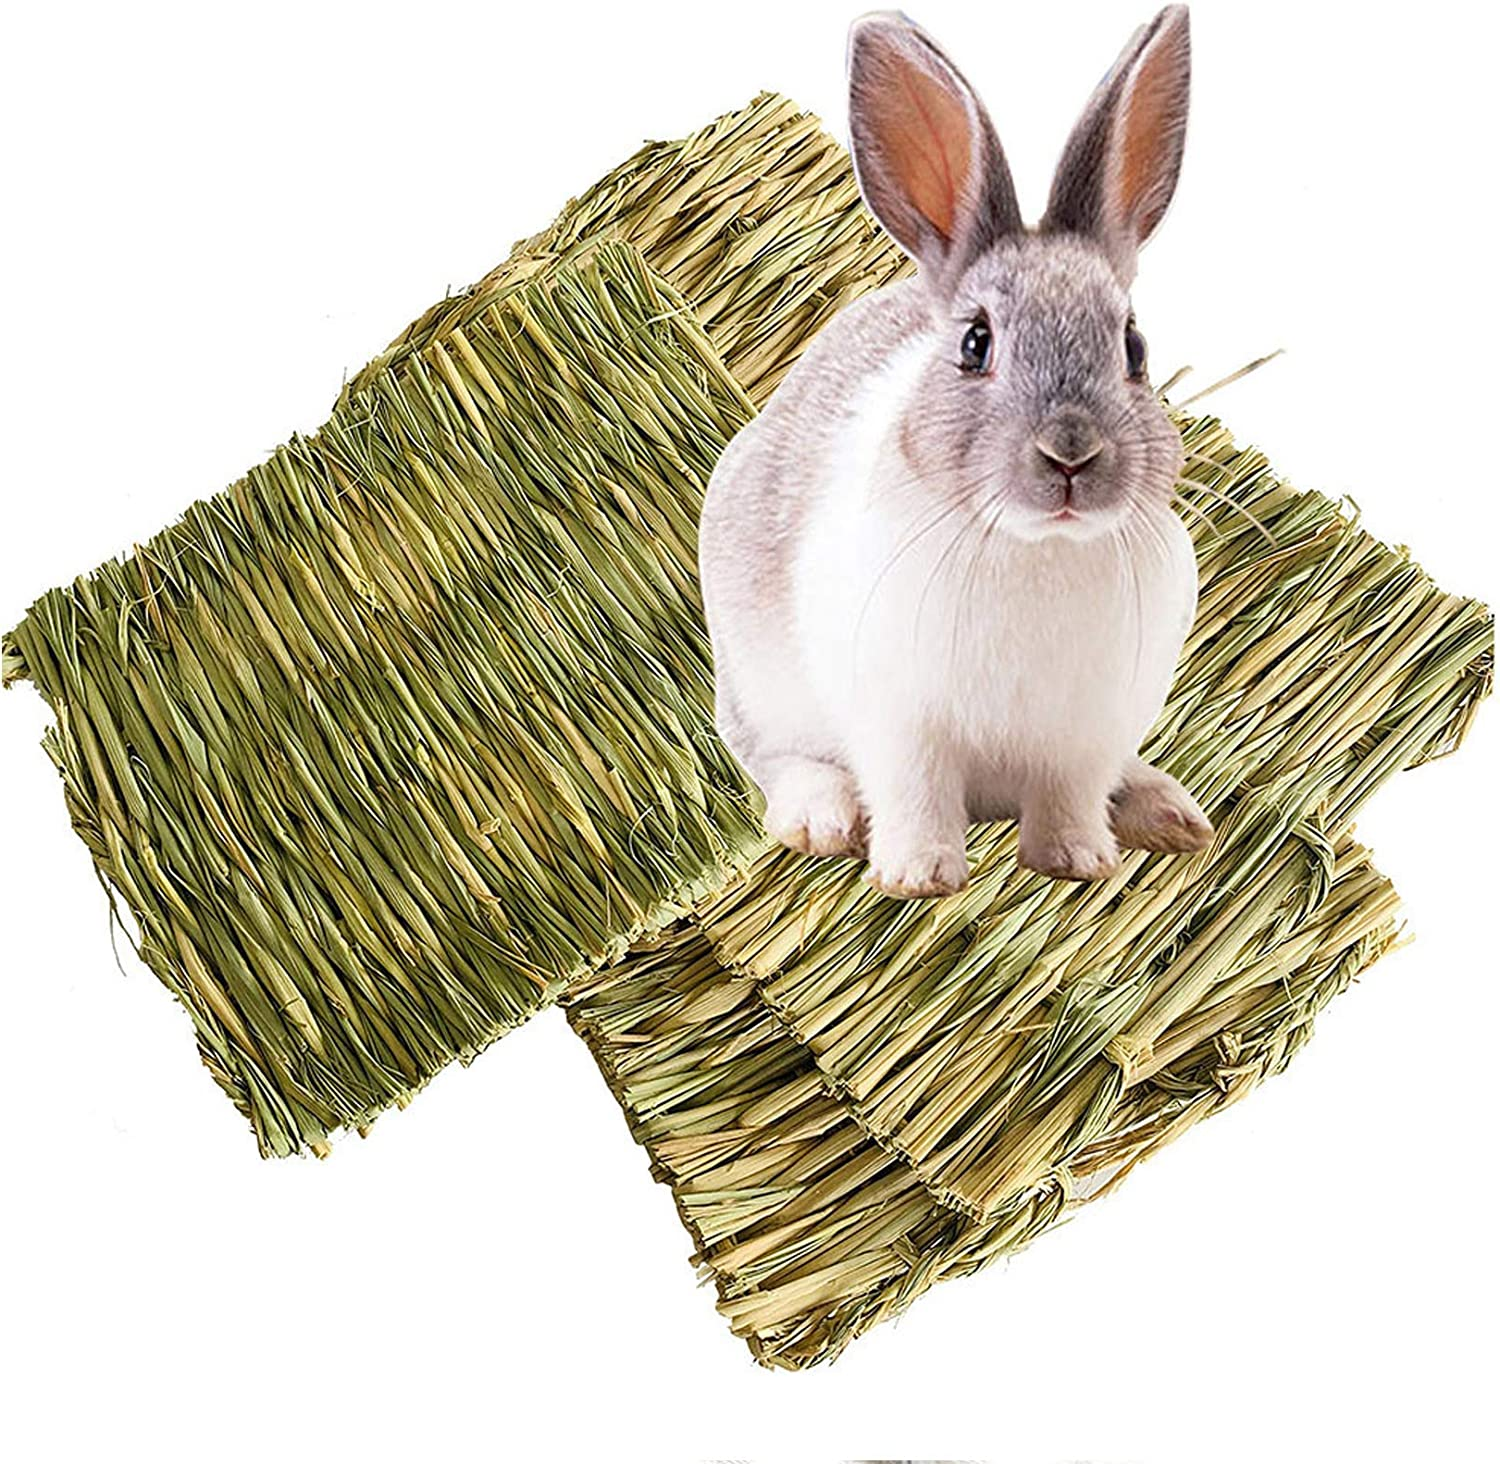 Hamiledyi Rabbit Bunny Grass Mat,3 Pack Hamster Mat Natural Straw Woven Bed Mat Bunny Bedding Nest Chew Toy for Small Animal Guinea Pig Parrot Rat